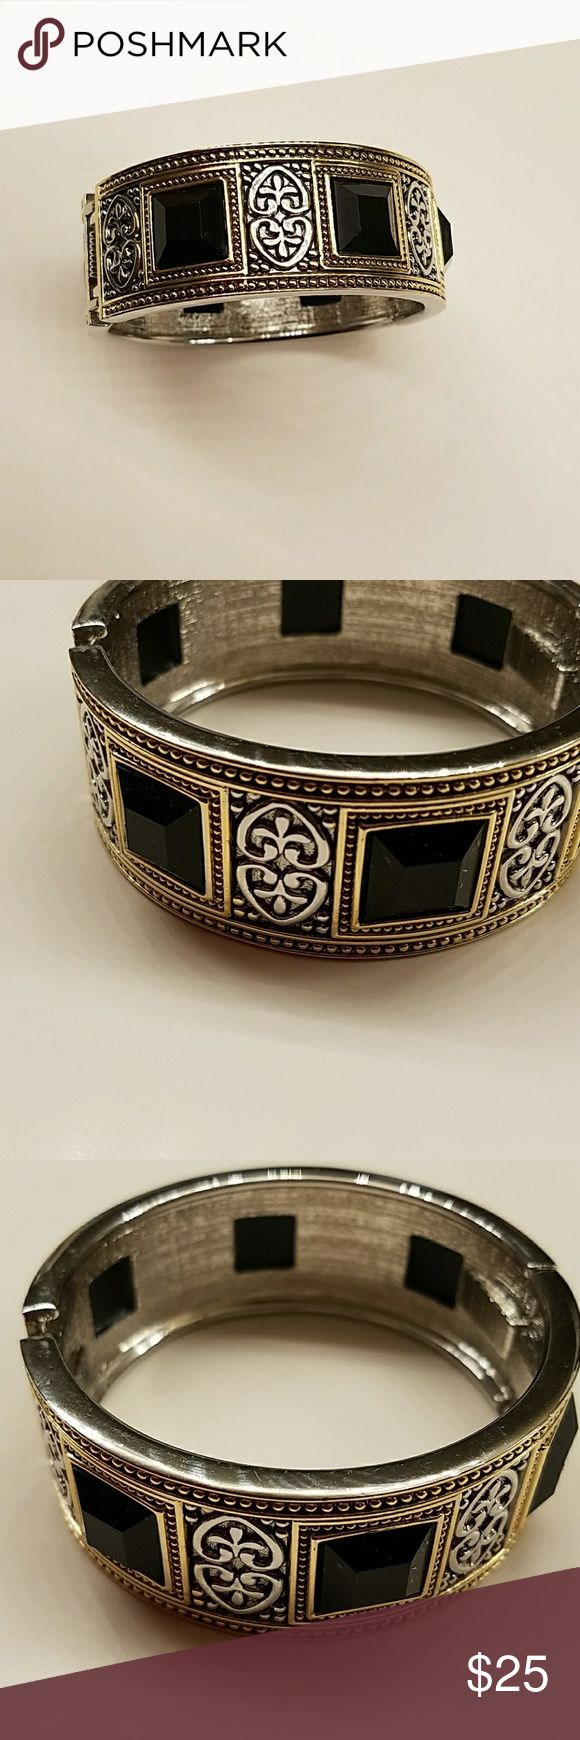 Silver and gold with black stones bracelet Beautiful bracelet looks like something from Brighton store Accessories